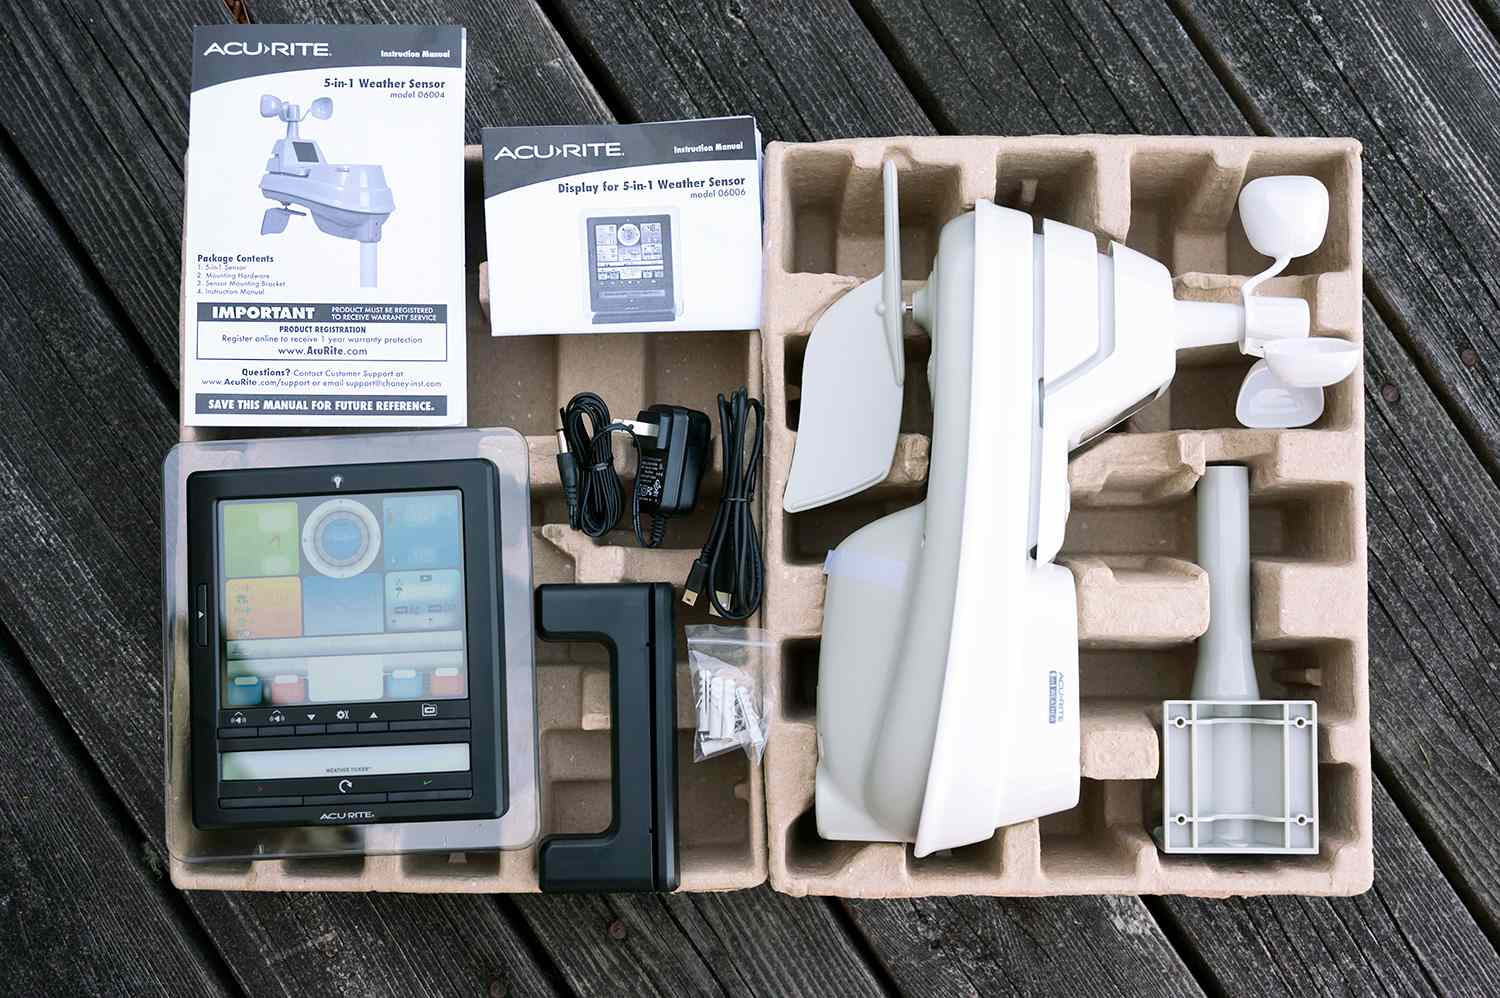 AcuRite Pro Weather Station 01036M